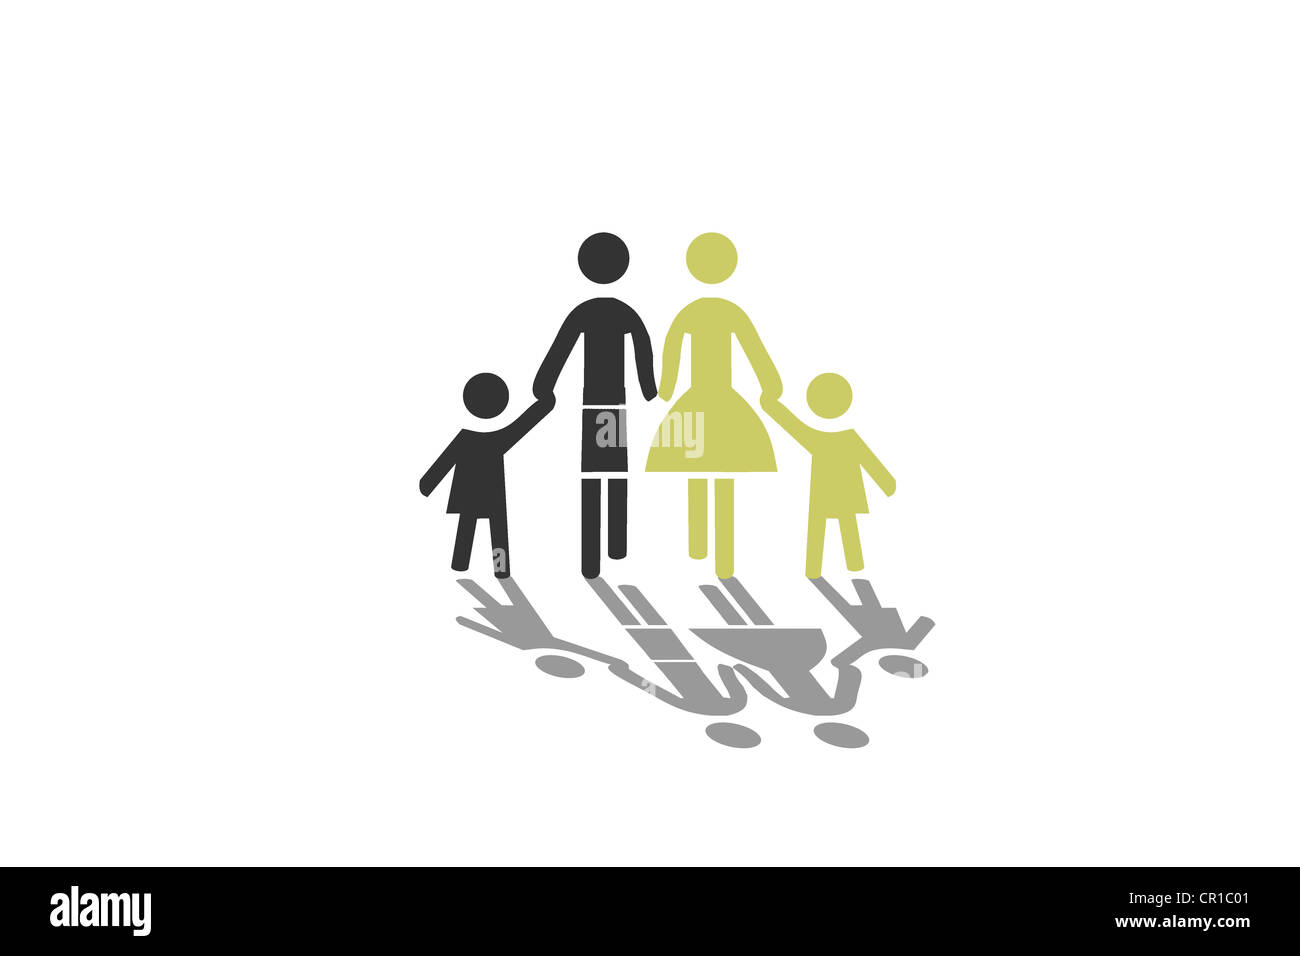 Family, blended family, mixed marriage, symbolic image, illustration - Stock Image